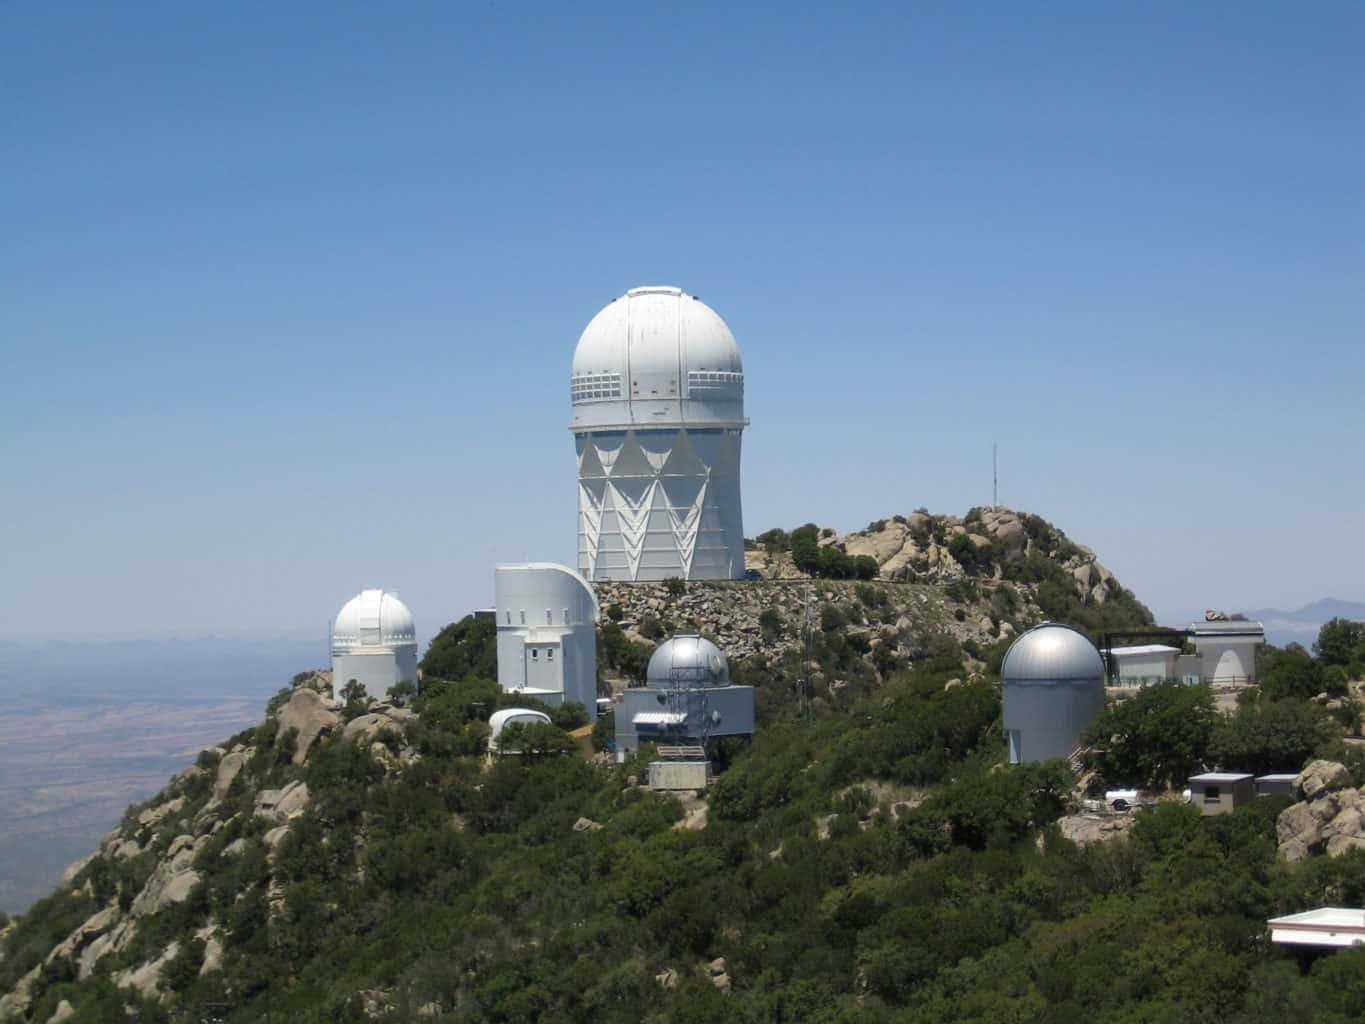 Image of Kitt Peak